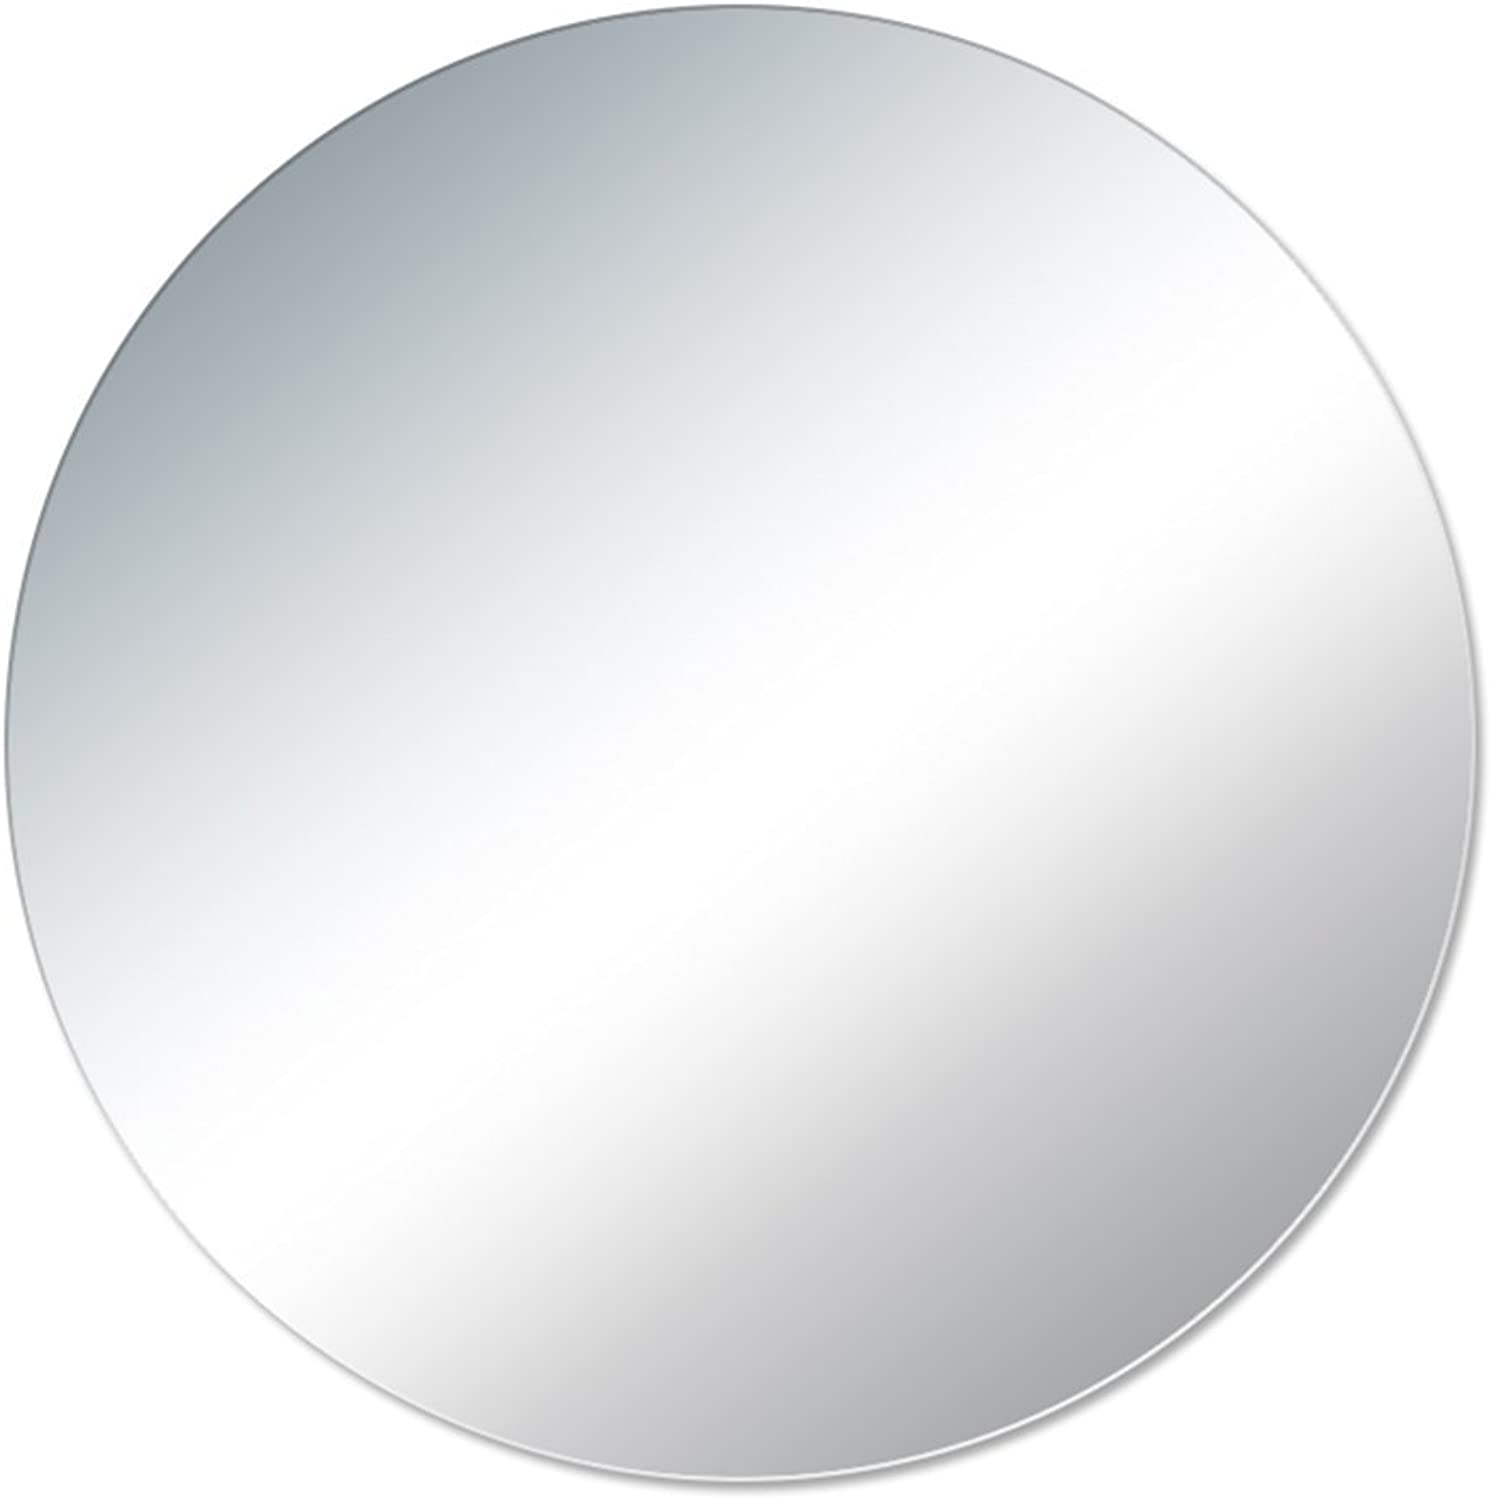 Bathroom Mirror HD Explosion-Proof Round Frameless Mirror Wall-Mounted Vanity Mirror